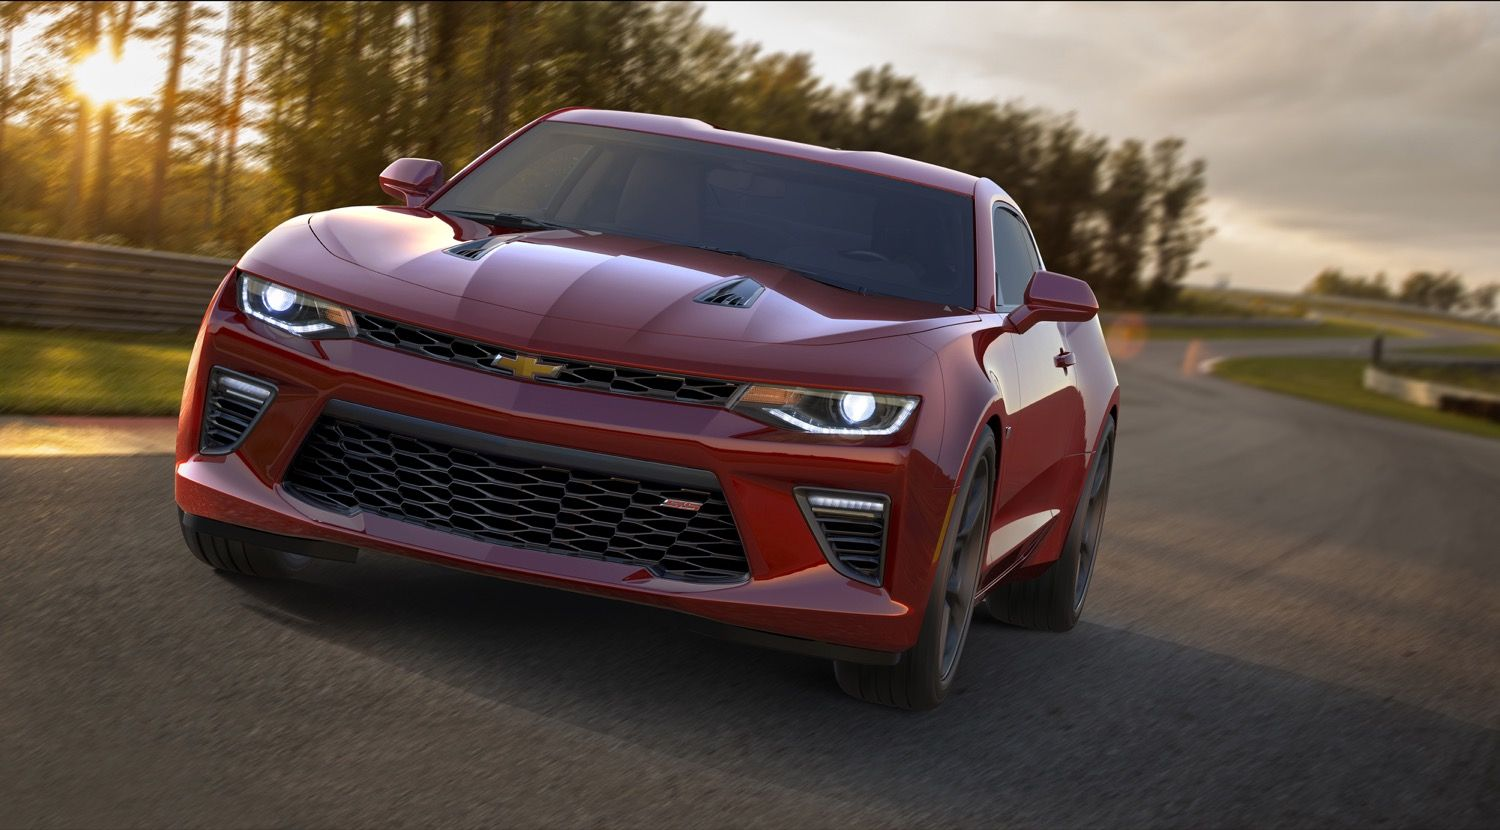 2018 Chevrolet Camaro Zl1 Price 2016 2017 Car Reviews Chevrolet Camaro Red Camaro Chevy Camaro 2016